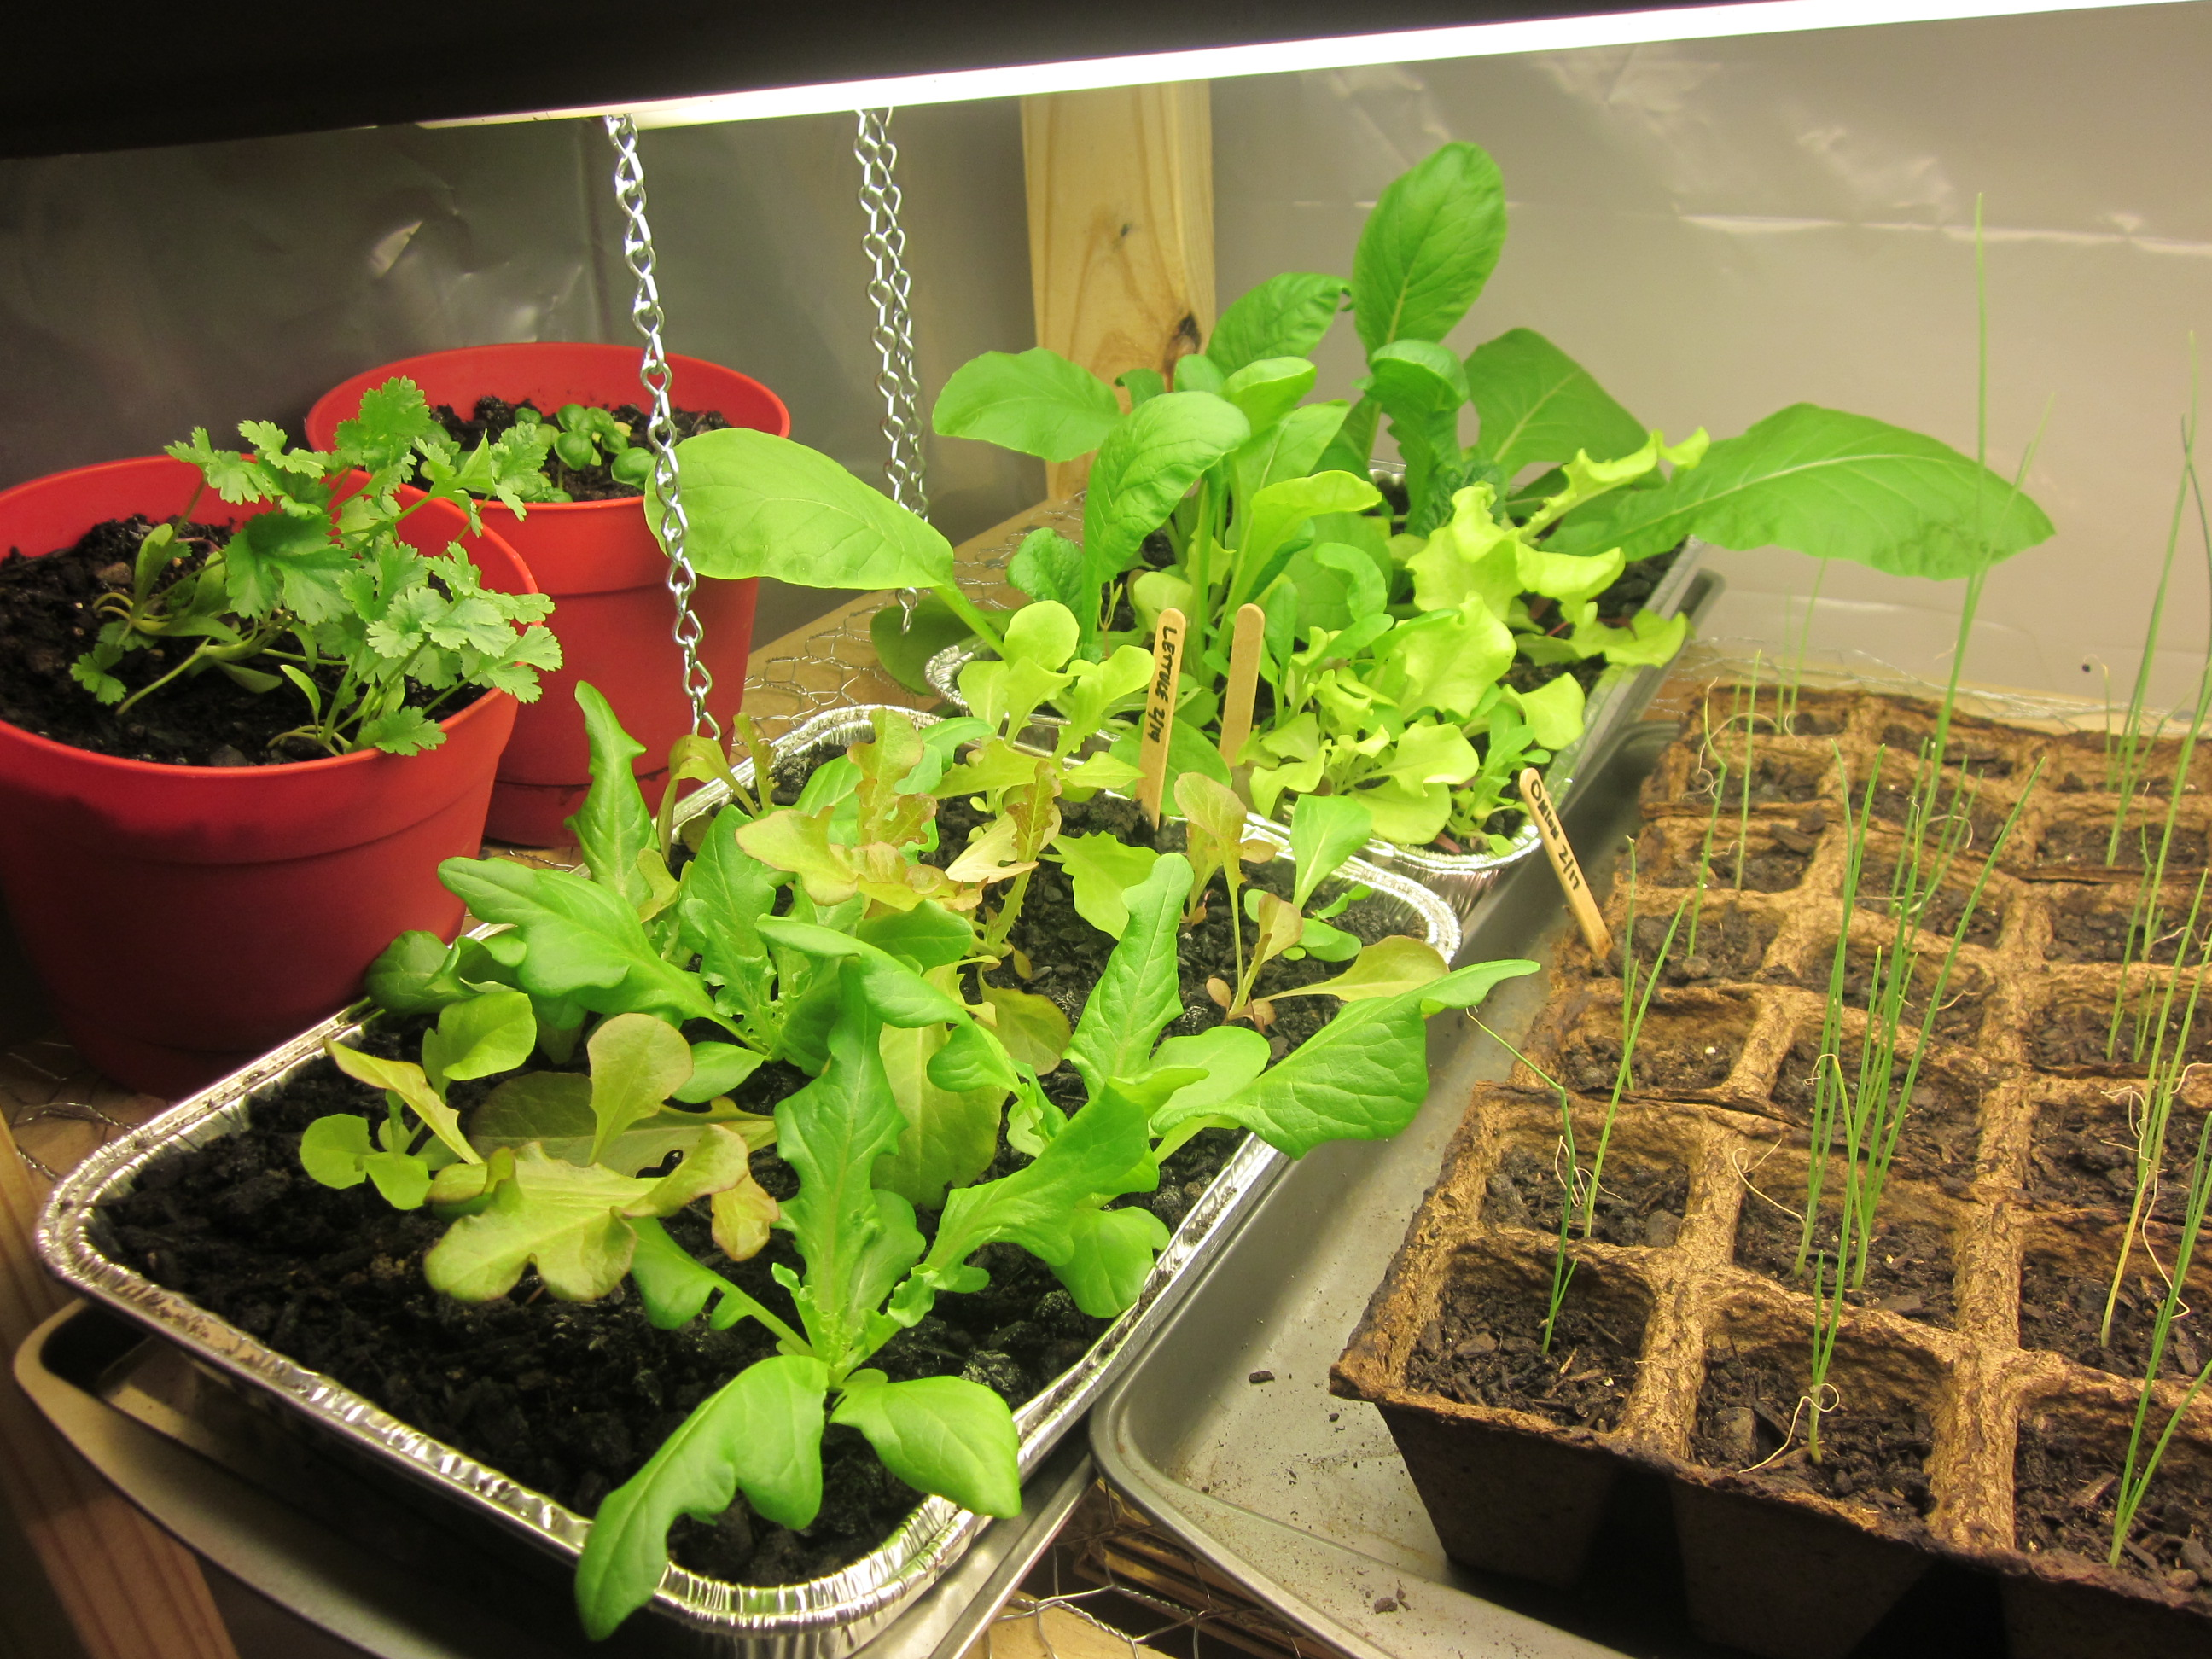 How To Make A Grow Light For Your Garage Idaho Gardening Wiring Up Lights Lettuce Onions Cilantro Basil Close